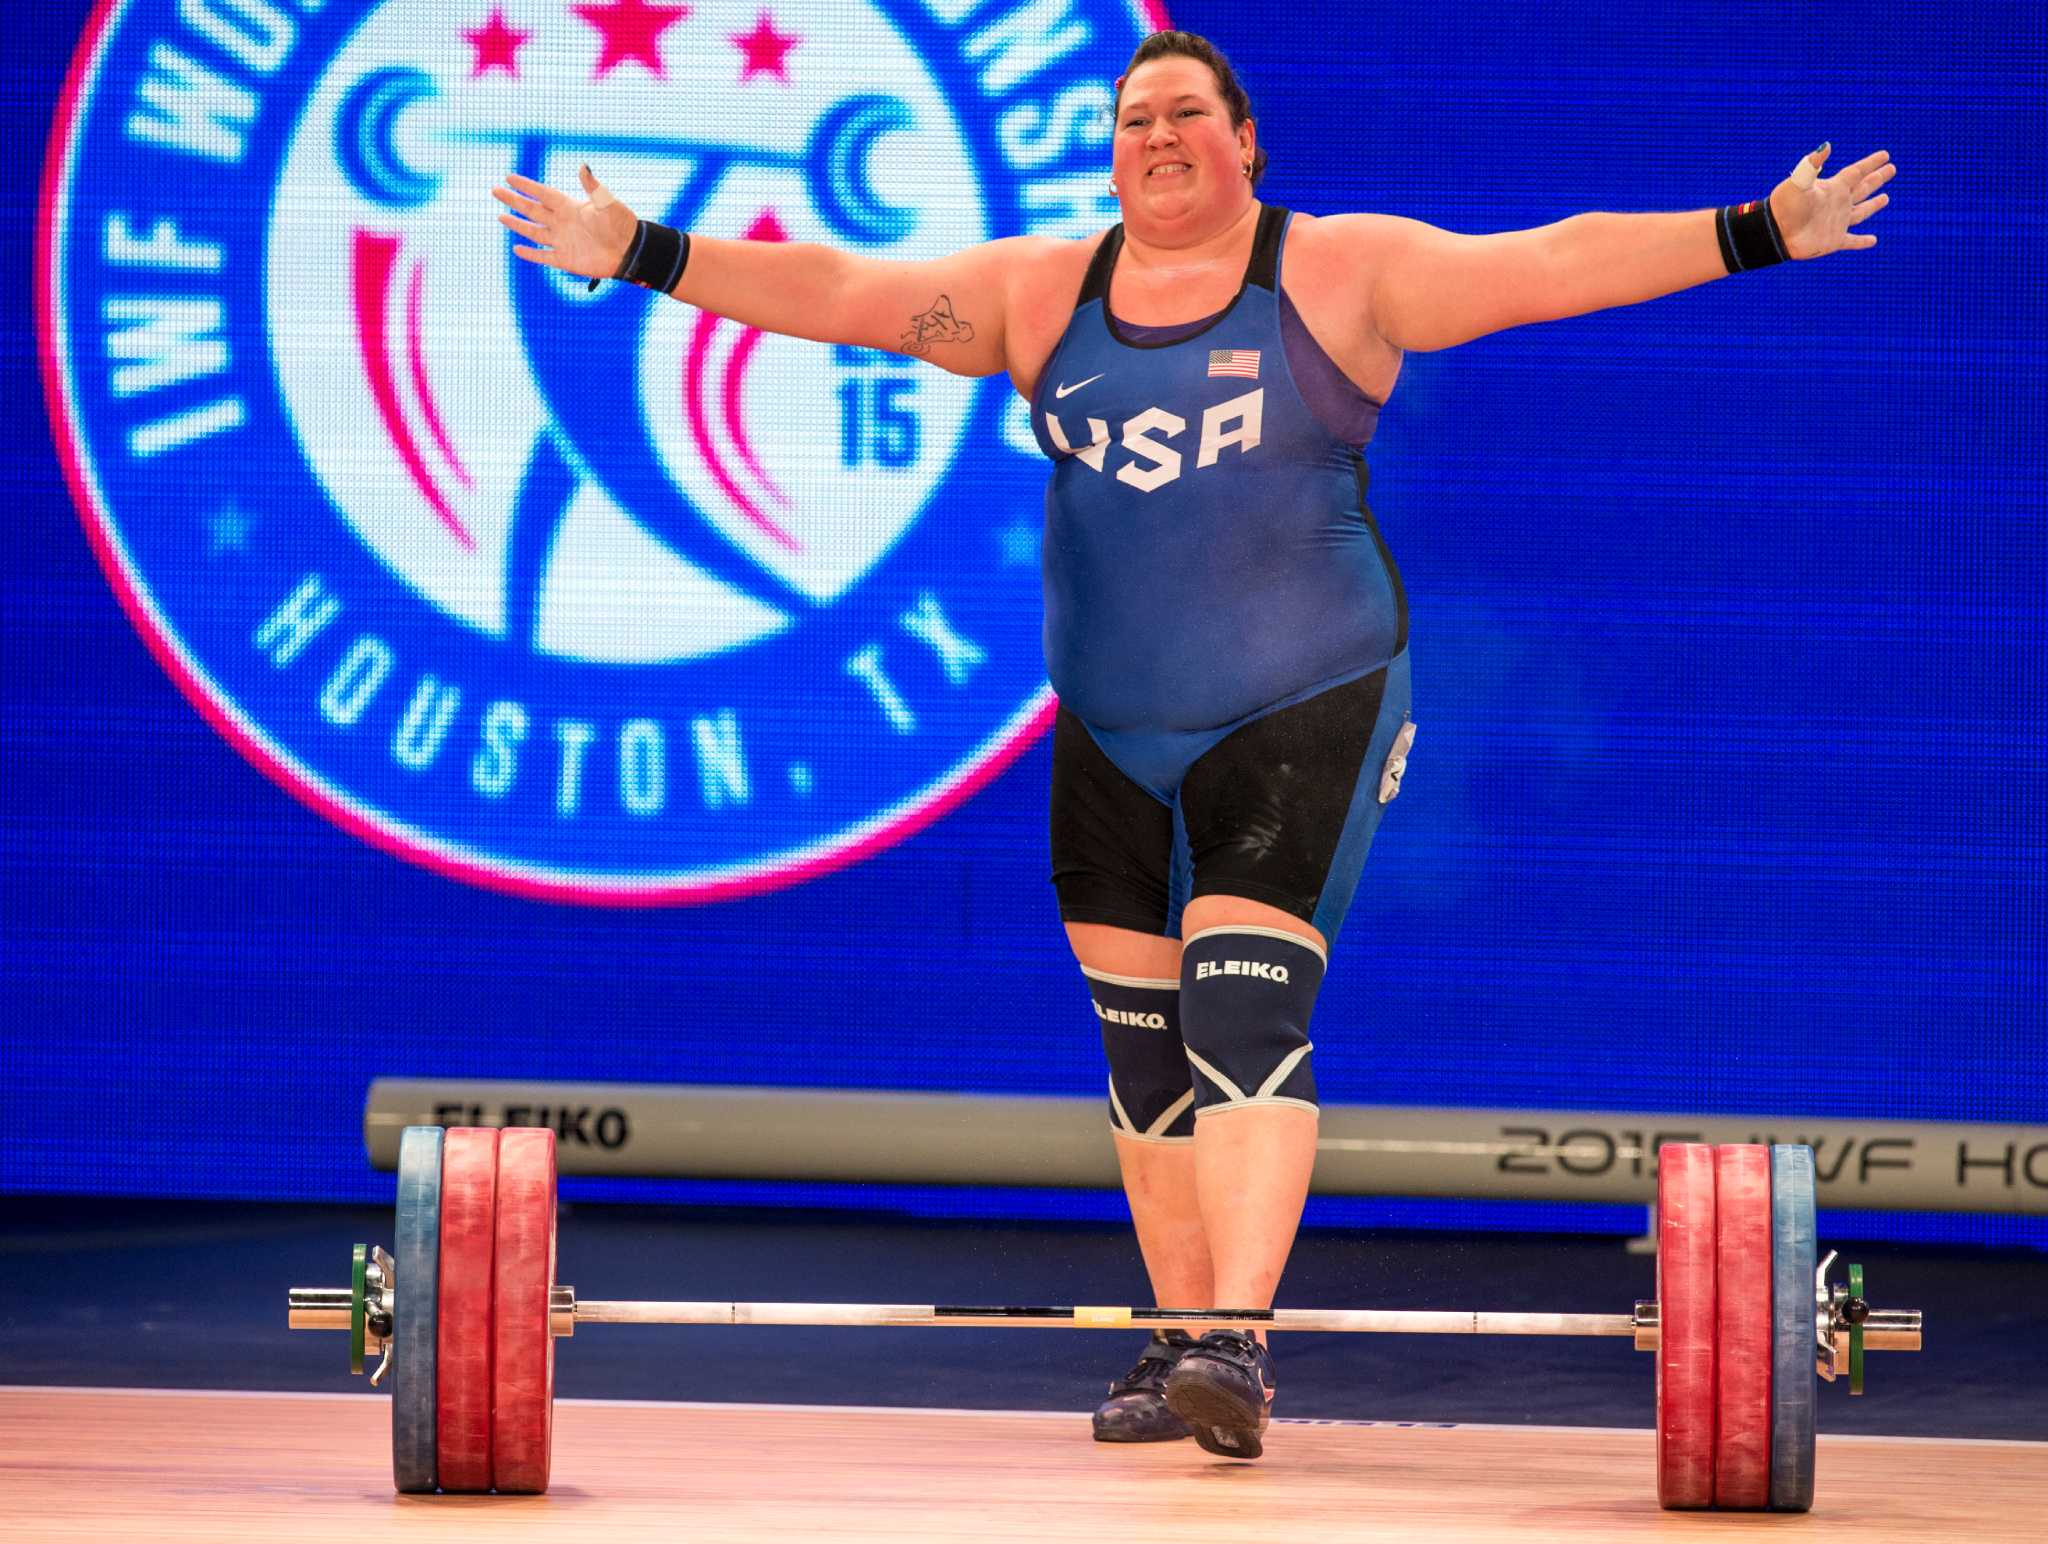 Weightlifter Sarah Robles Finds Way To Rio Through Houston Houstonchronicle Com